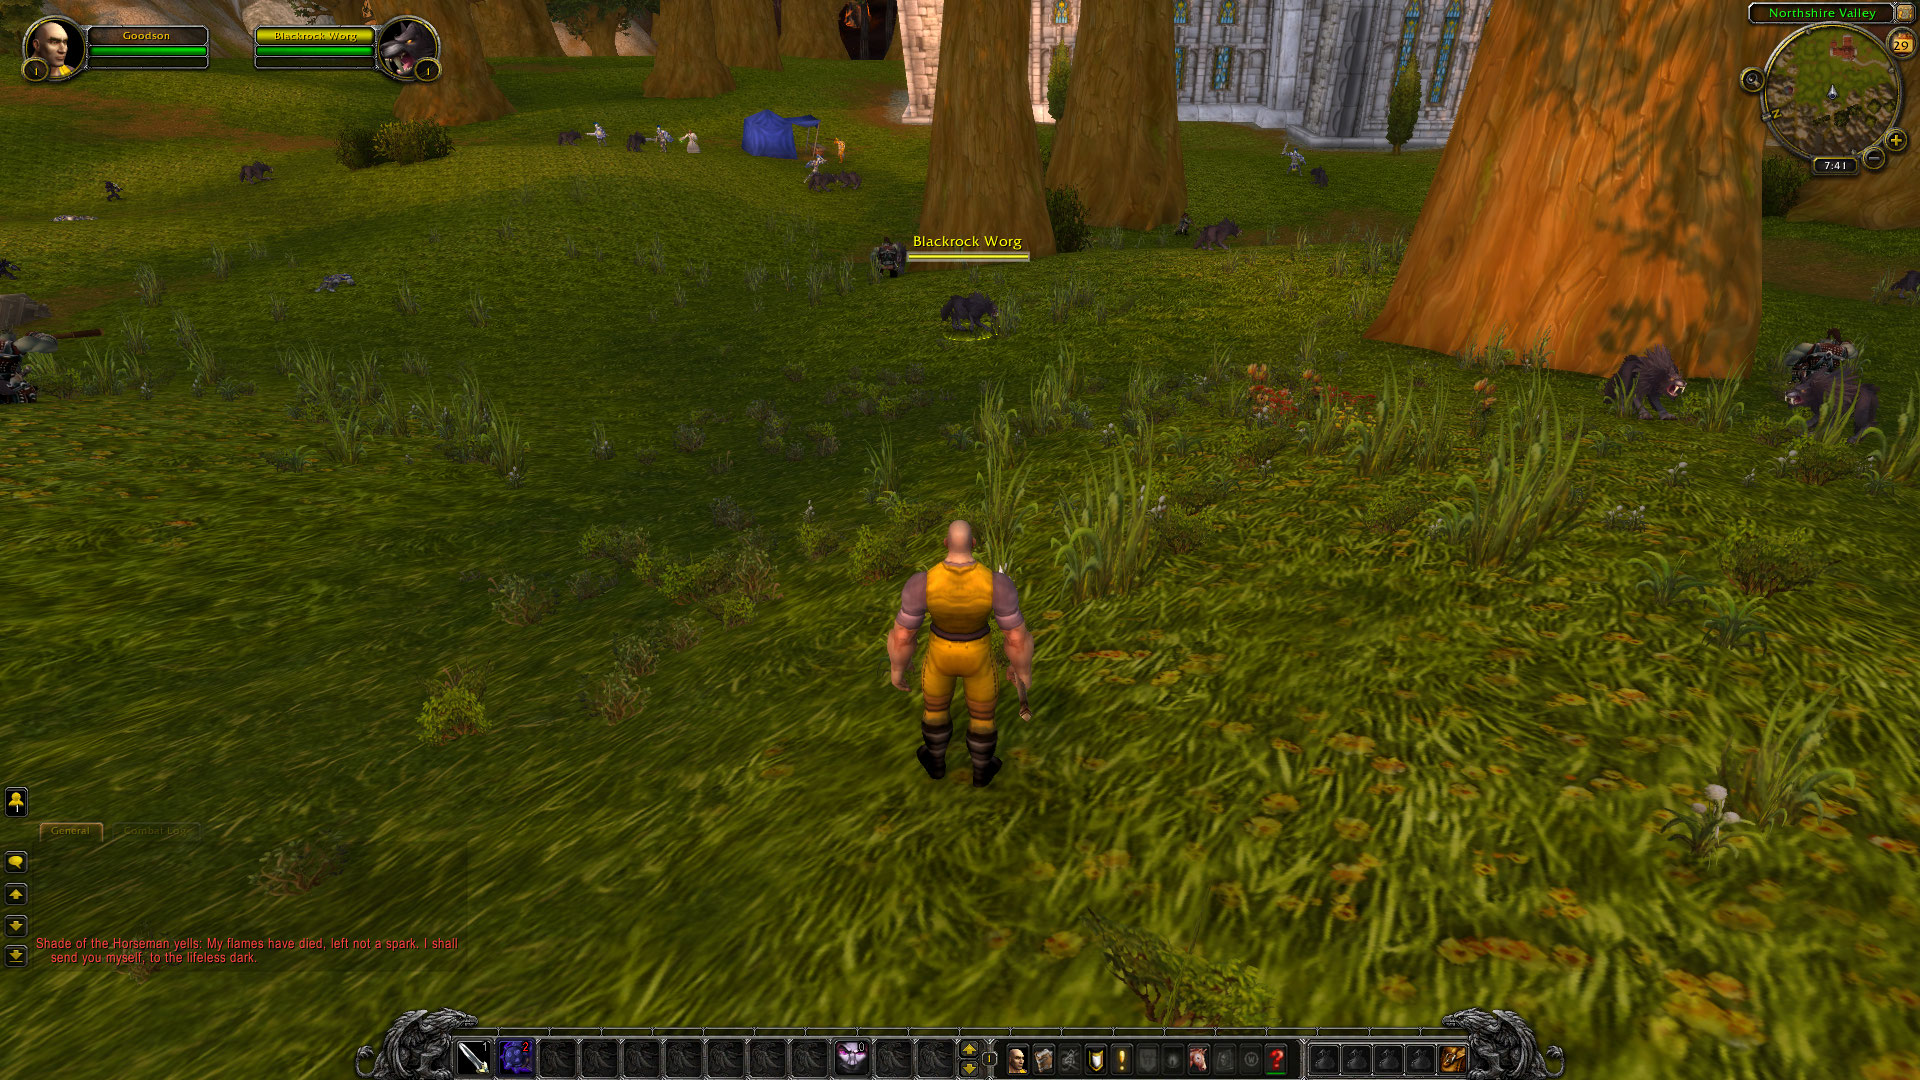 A screenshot from World of Warcraft with the default user interface